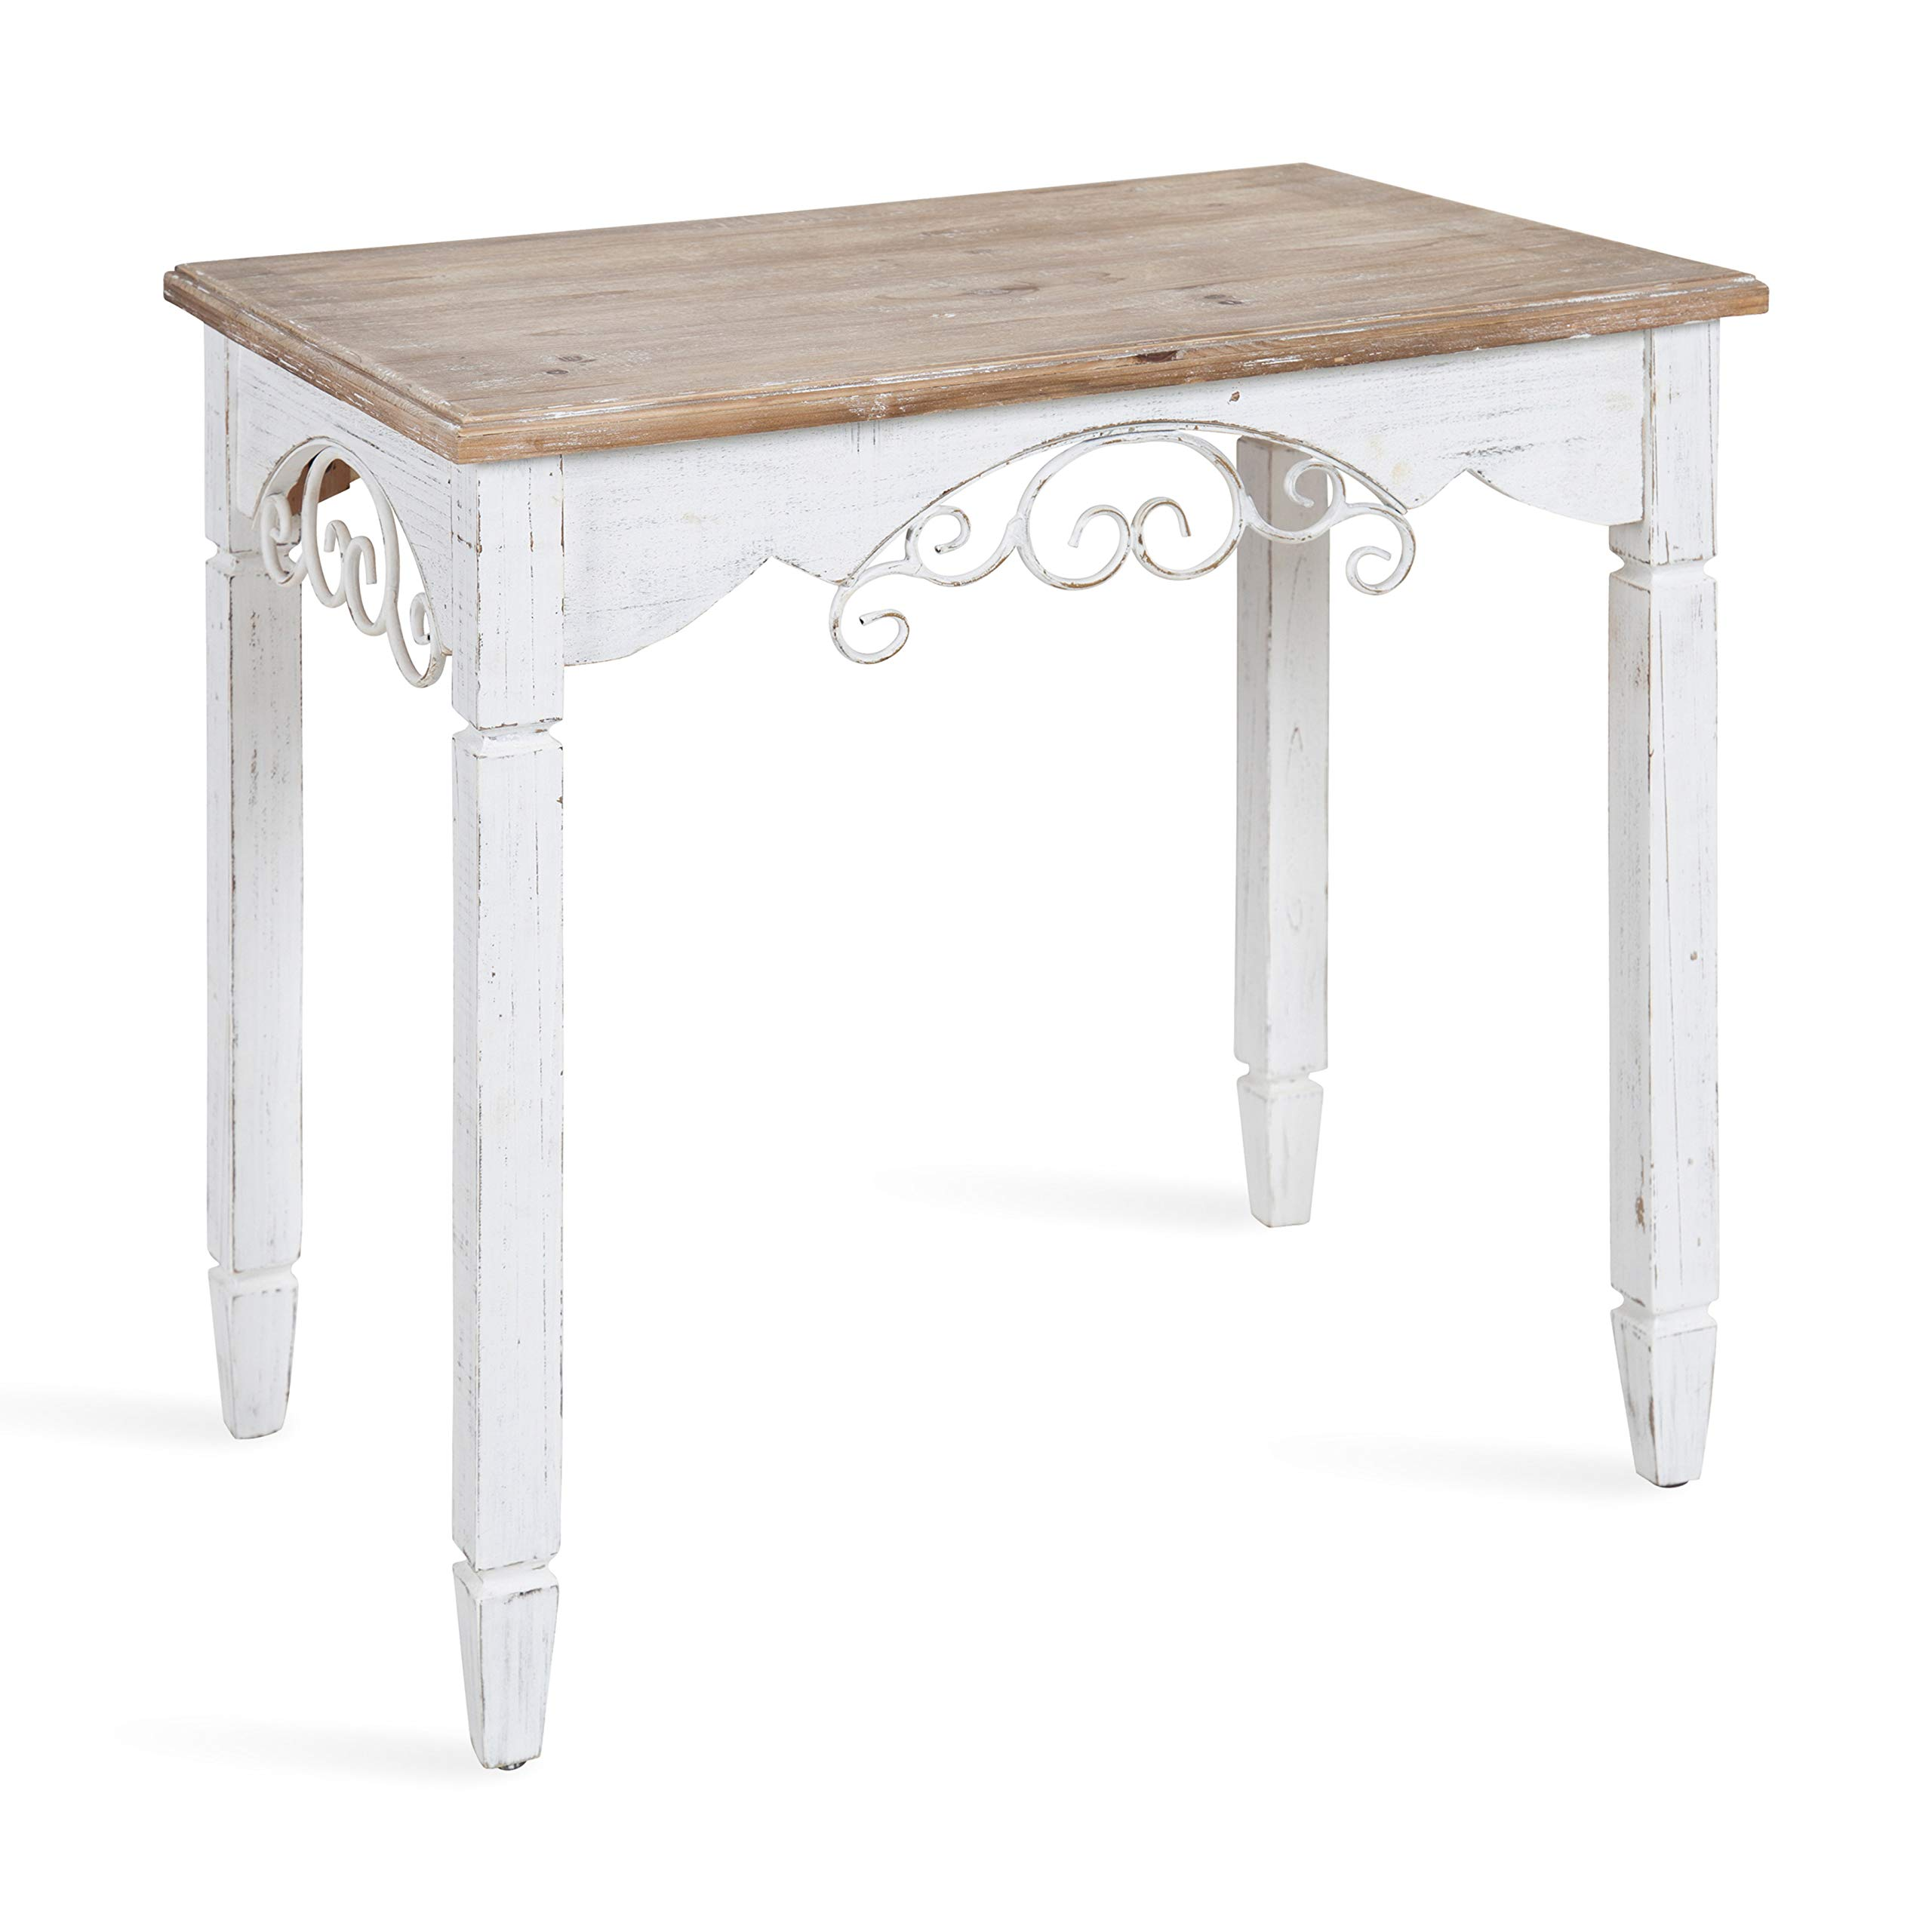 Kate and Laurel Kimberlyn Vintage Farmhouse Wood End Table, White and Rustic Wood by Kate and Laurel